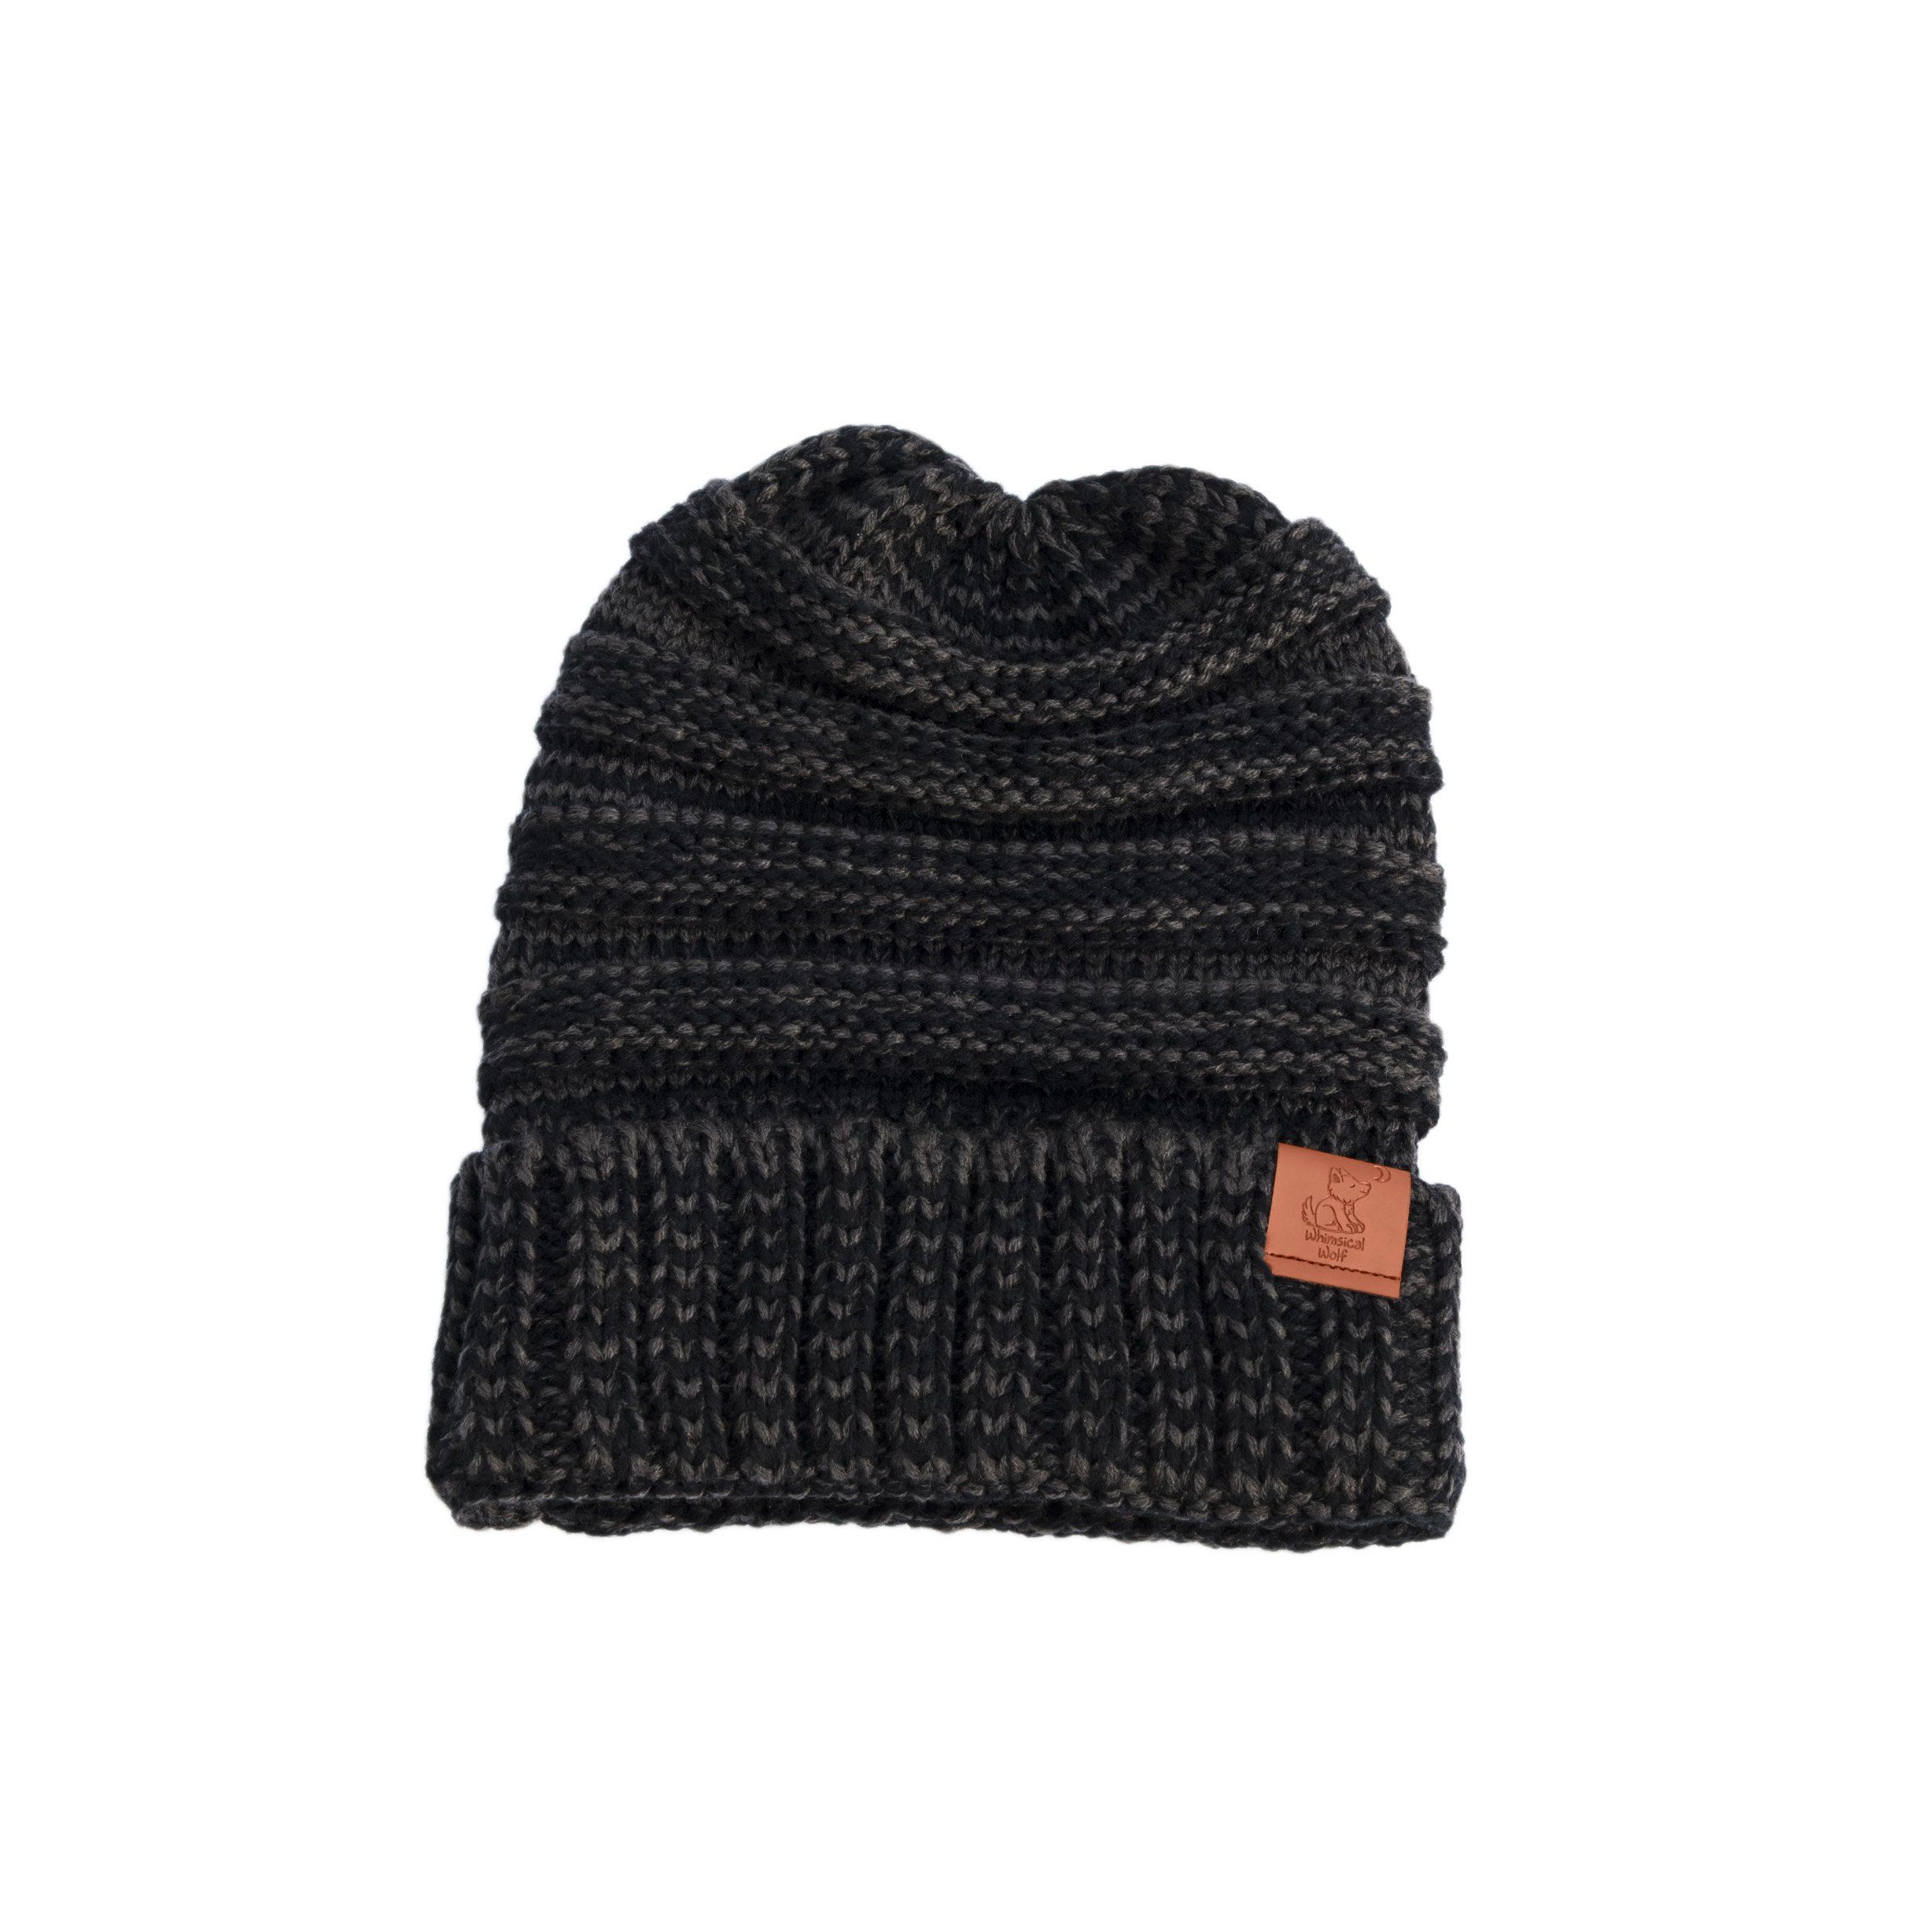 Triblend Heather Grey Black Knit Cuffed Beanie  effad24f5ef7